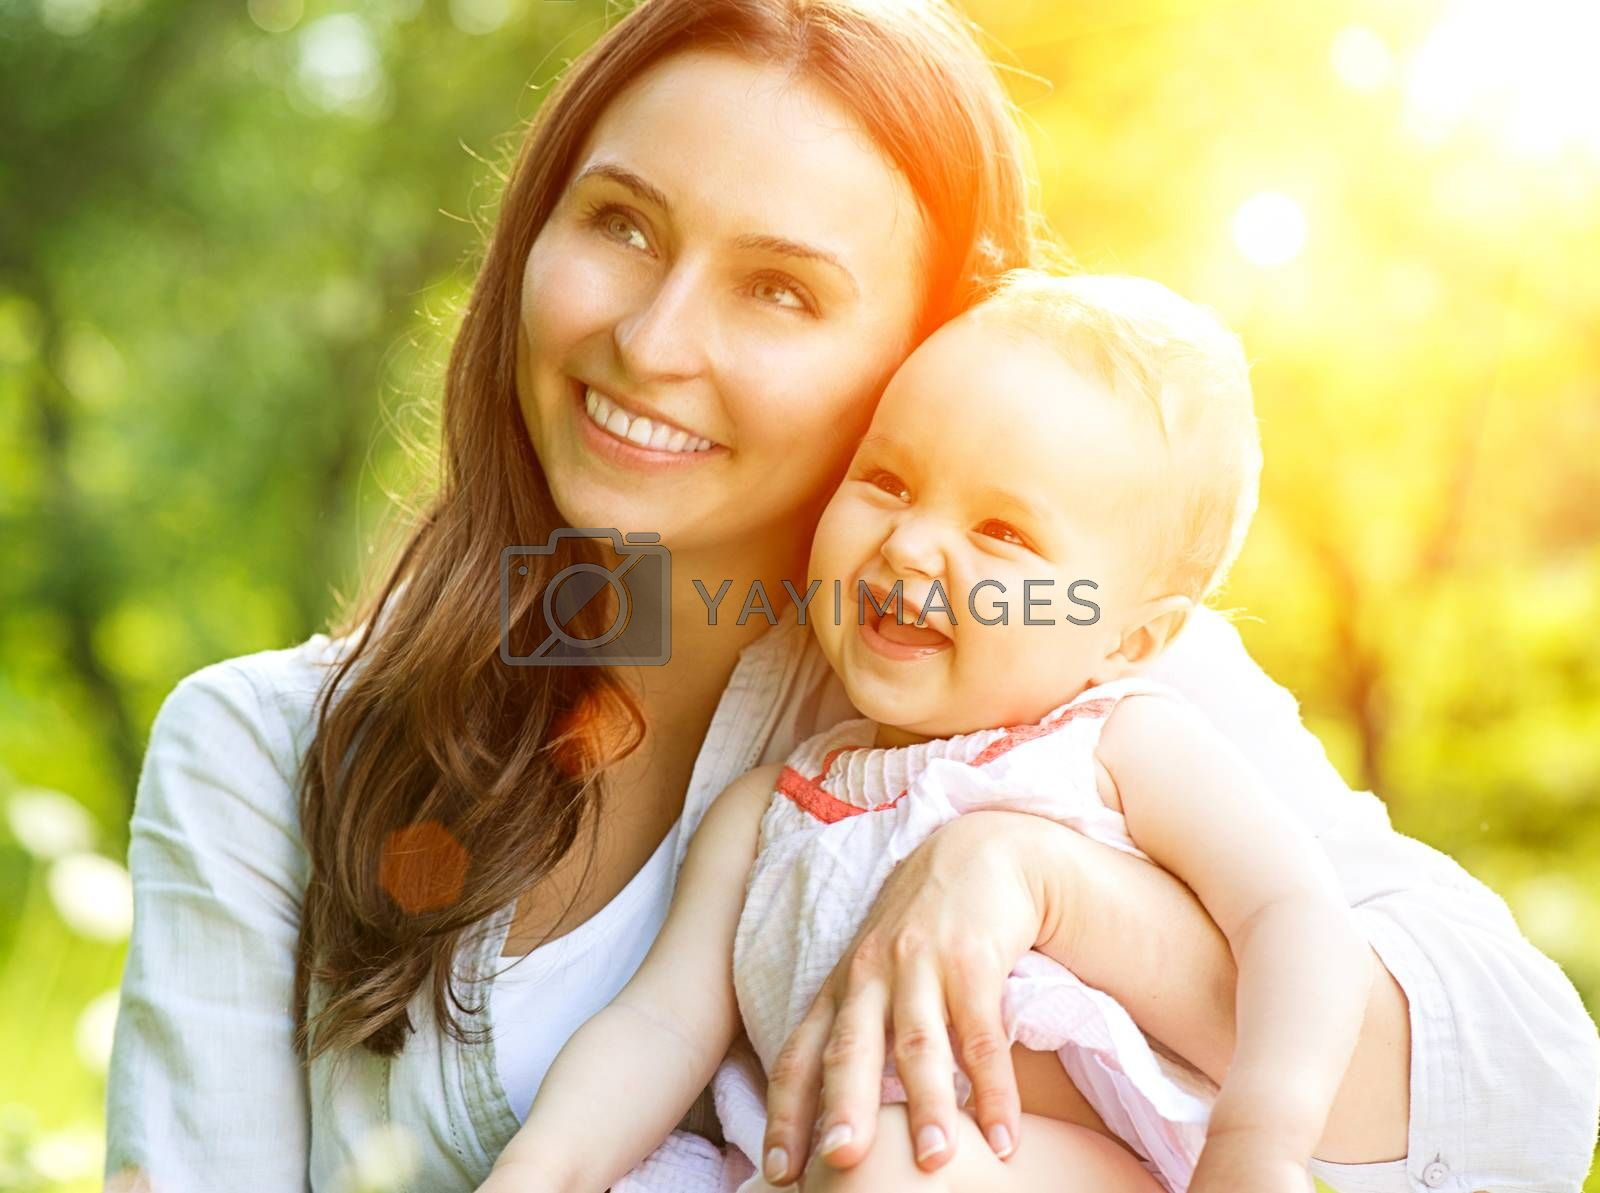 Beautiful Mother And Baby Outdoors. Nature by SubbotinaA